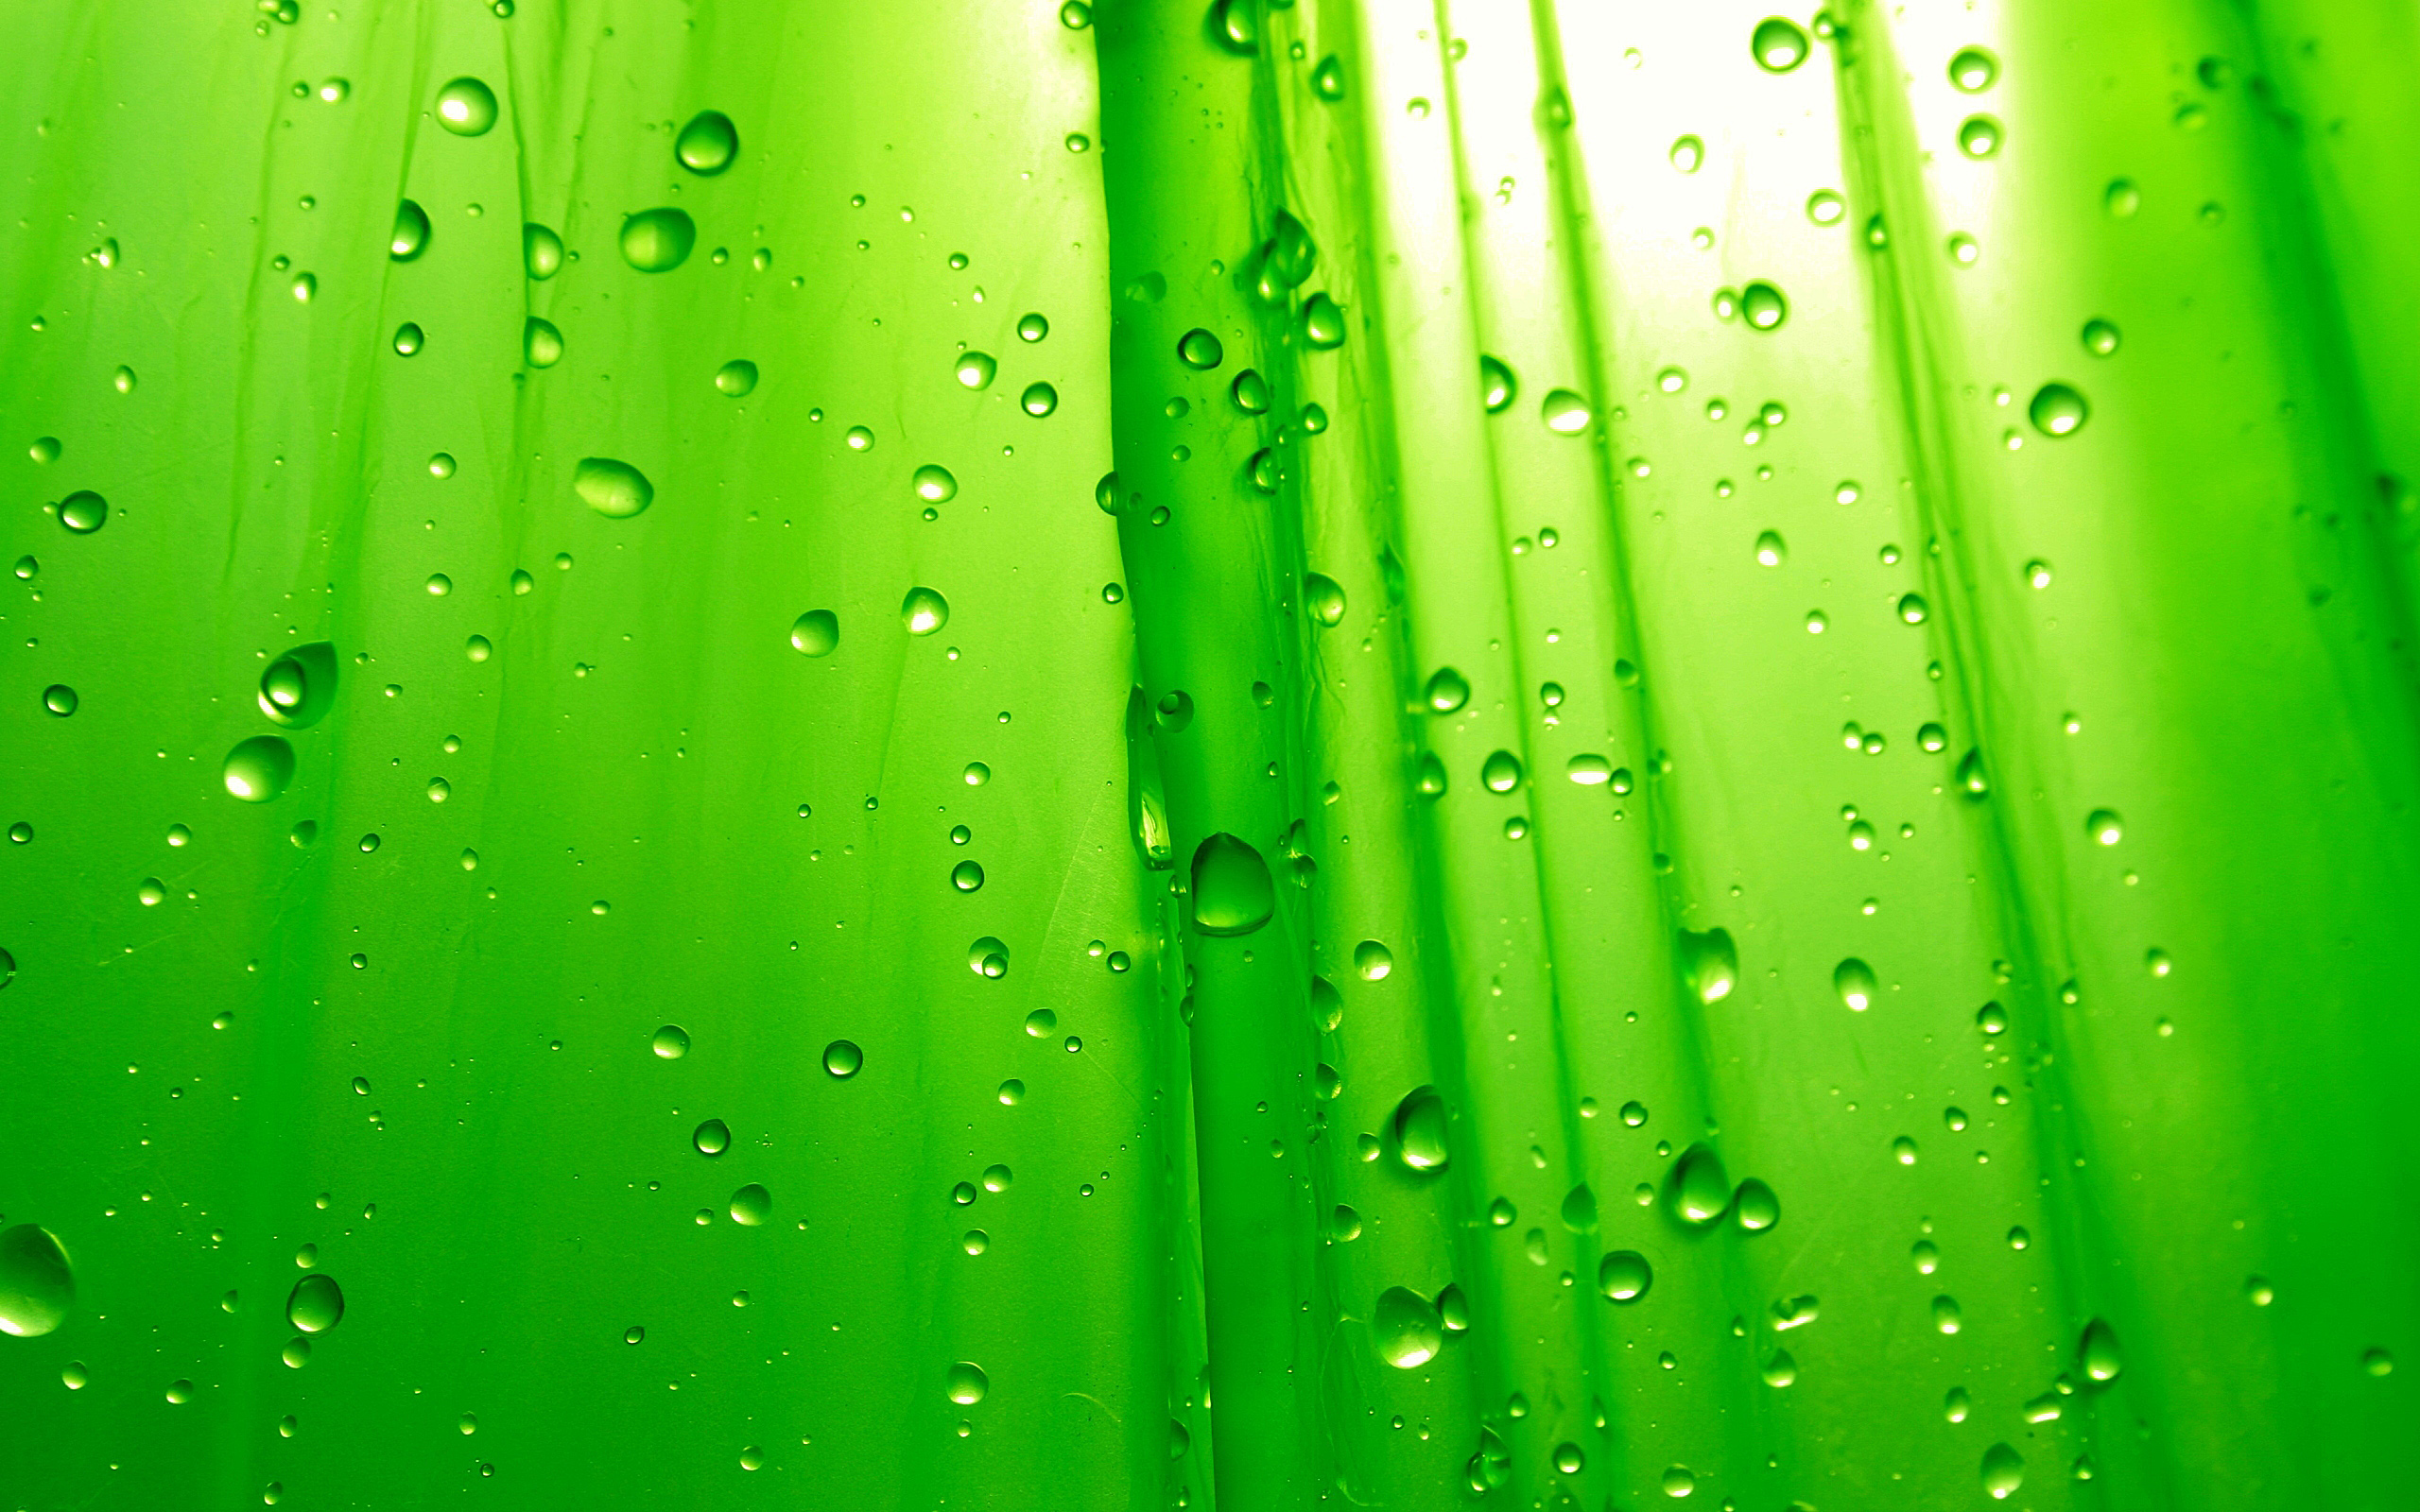 Hd wallpaper green - Description Green Hd Wallpaper Is A Hi Res Wallpaper For Pc Desktops